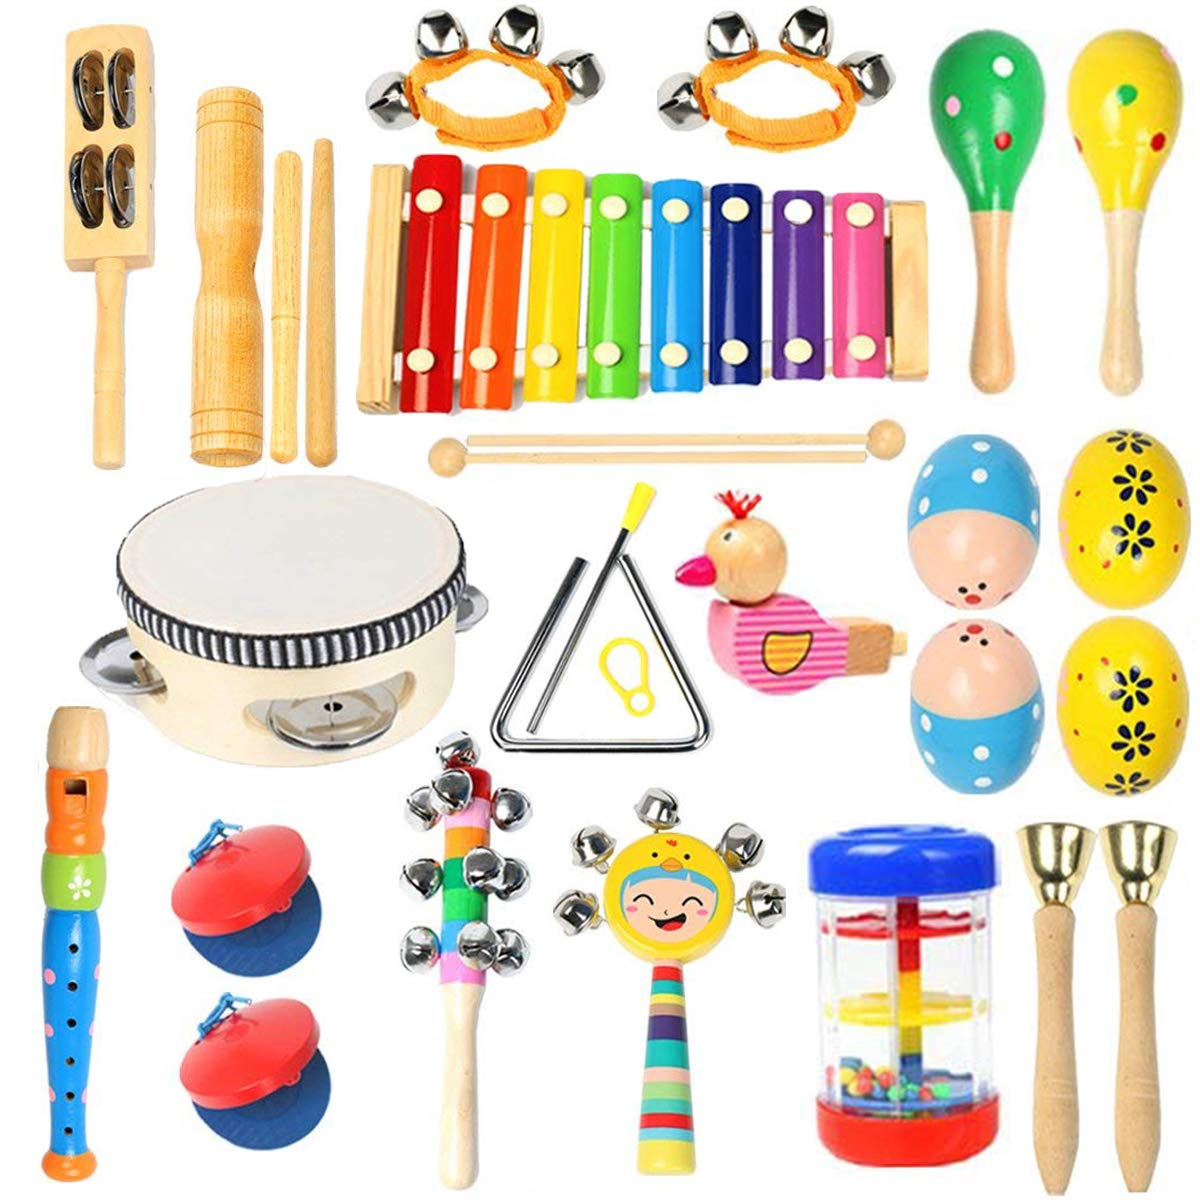 Toddler Musical Instruments- Ehome 15 Types 22pcs Wooden Percussion Instruments Toy